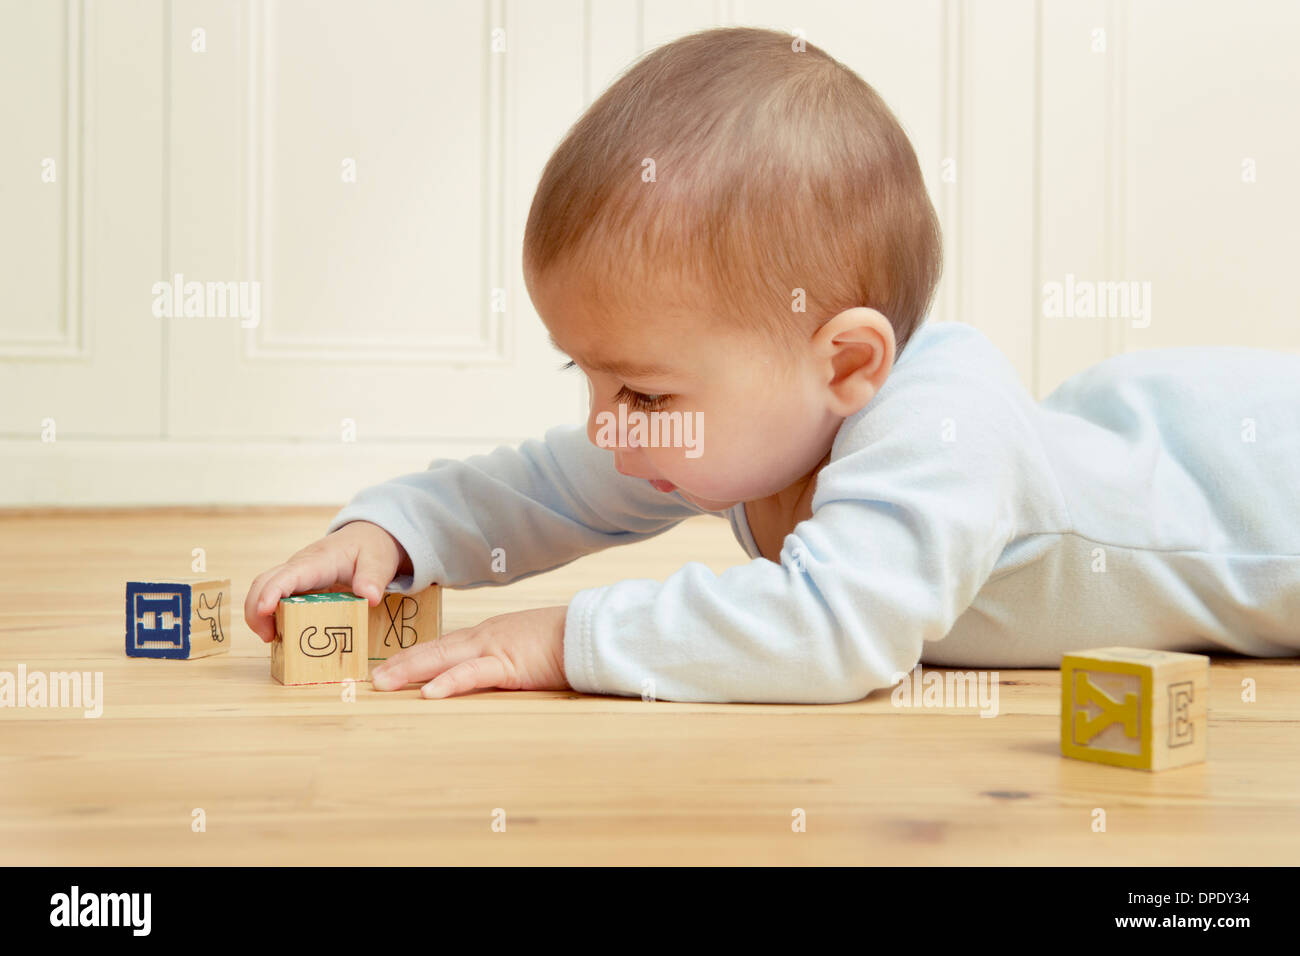 Baby lying on front playing with building blocks - Stock Image